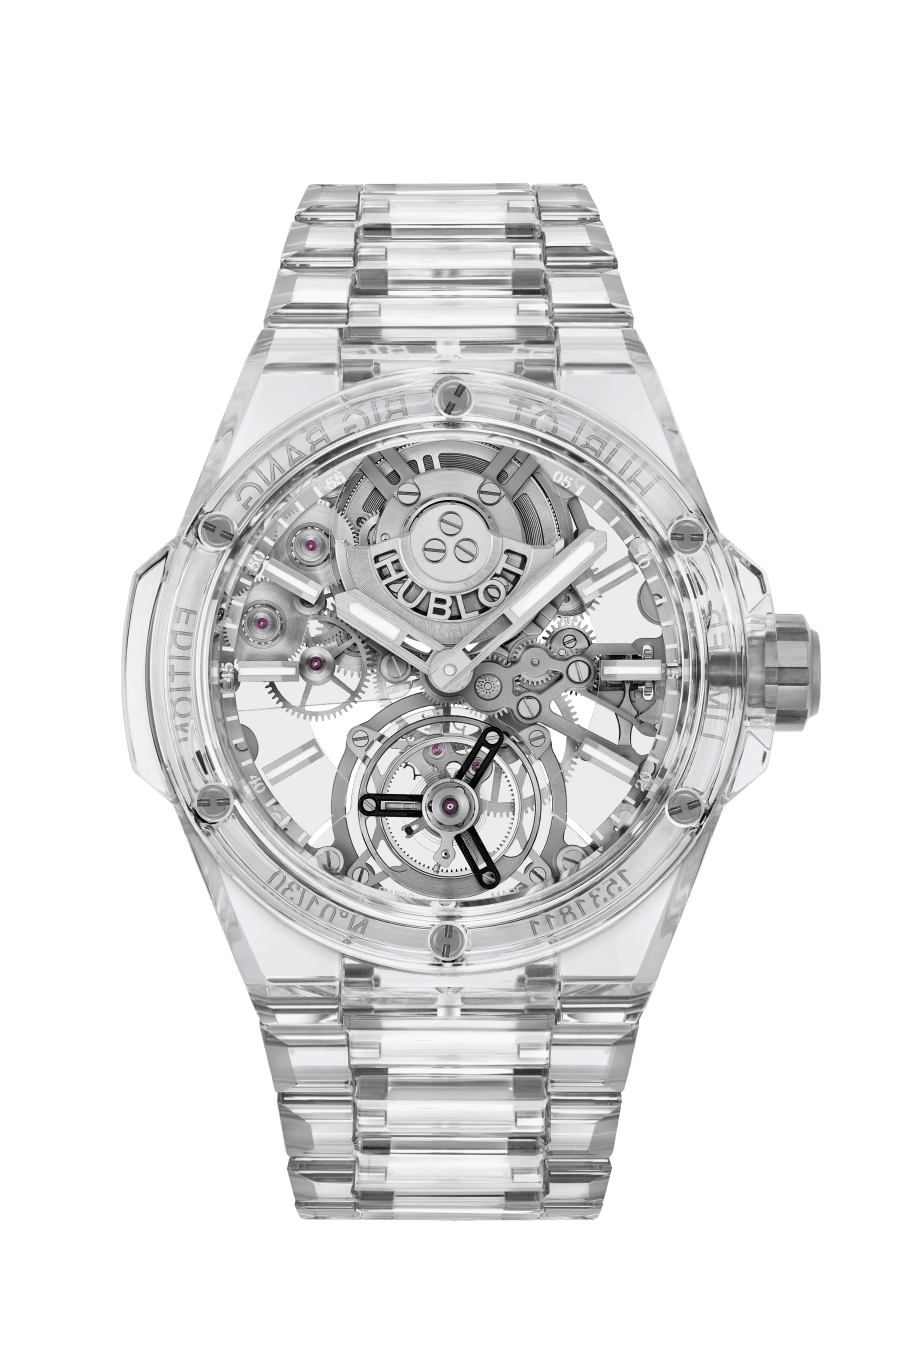 The new Hublot Big Bang Integral Tourbillon: sapphire inside and out